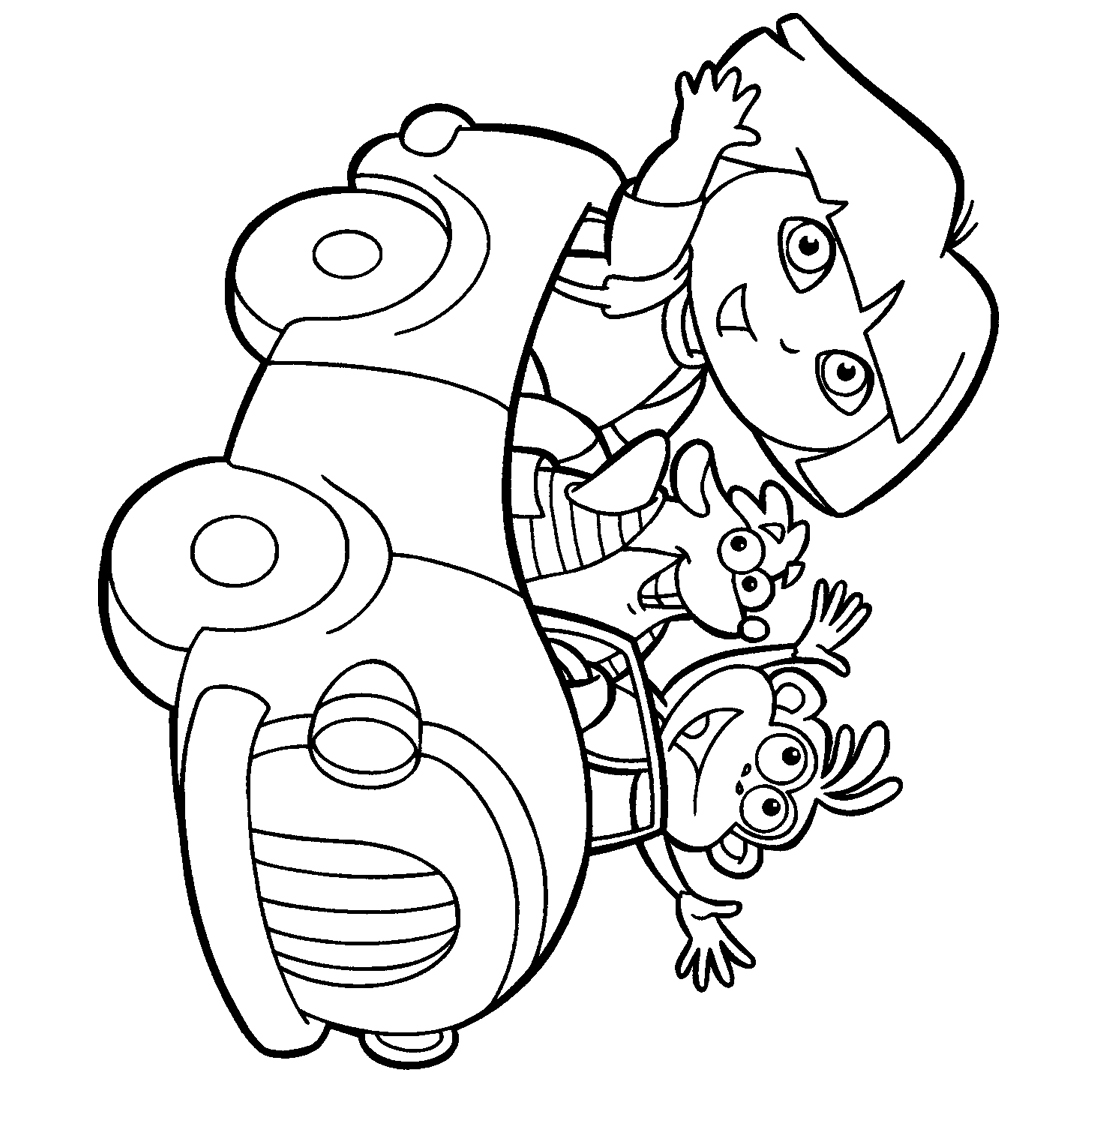 cool pictures to print printable coloring pages for kids coloring pages for kids print cool to pictures